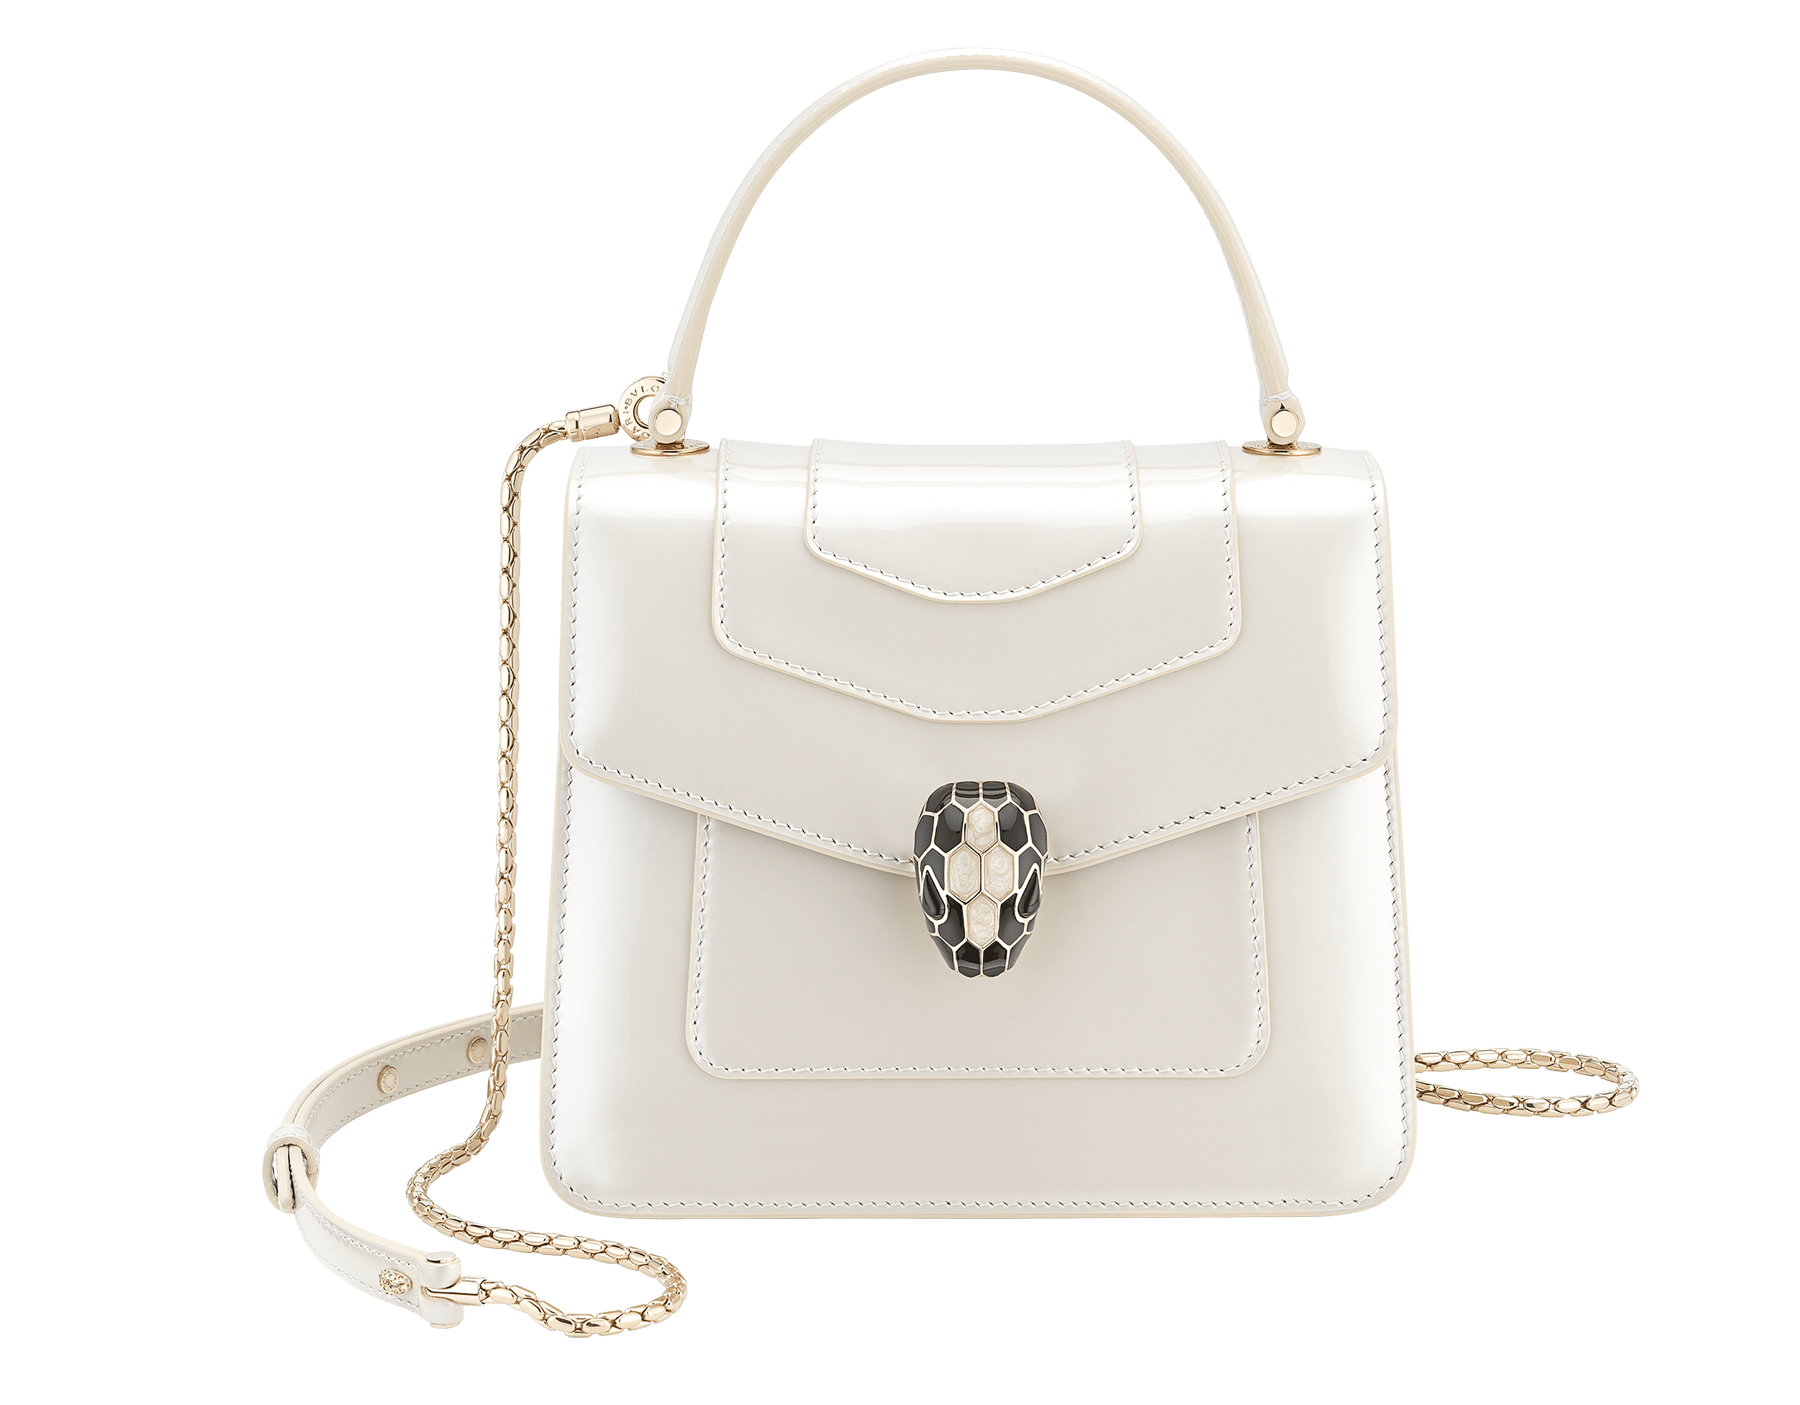 """""""Serpenti Forever """" crossbody bag in white agate leather with a varnished and pearled effect. Iconic snake head closure in light gold plated brass enriched with black and pearled white agate enamel, and black onyx eyes 752-CLd image 1"""